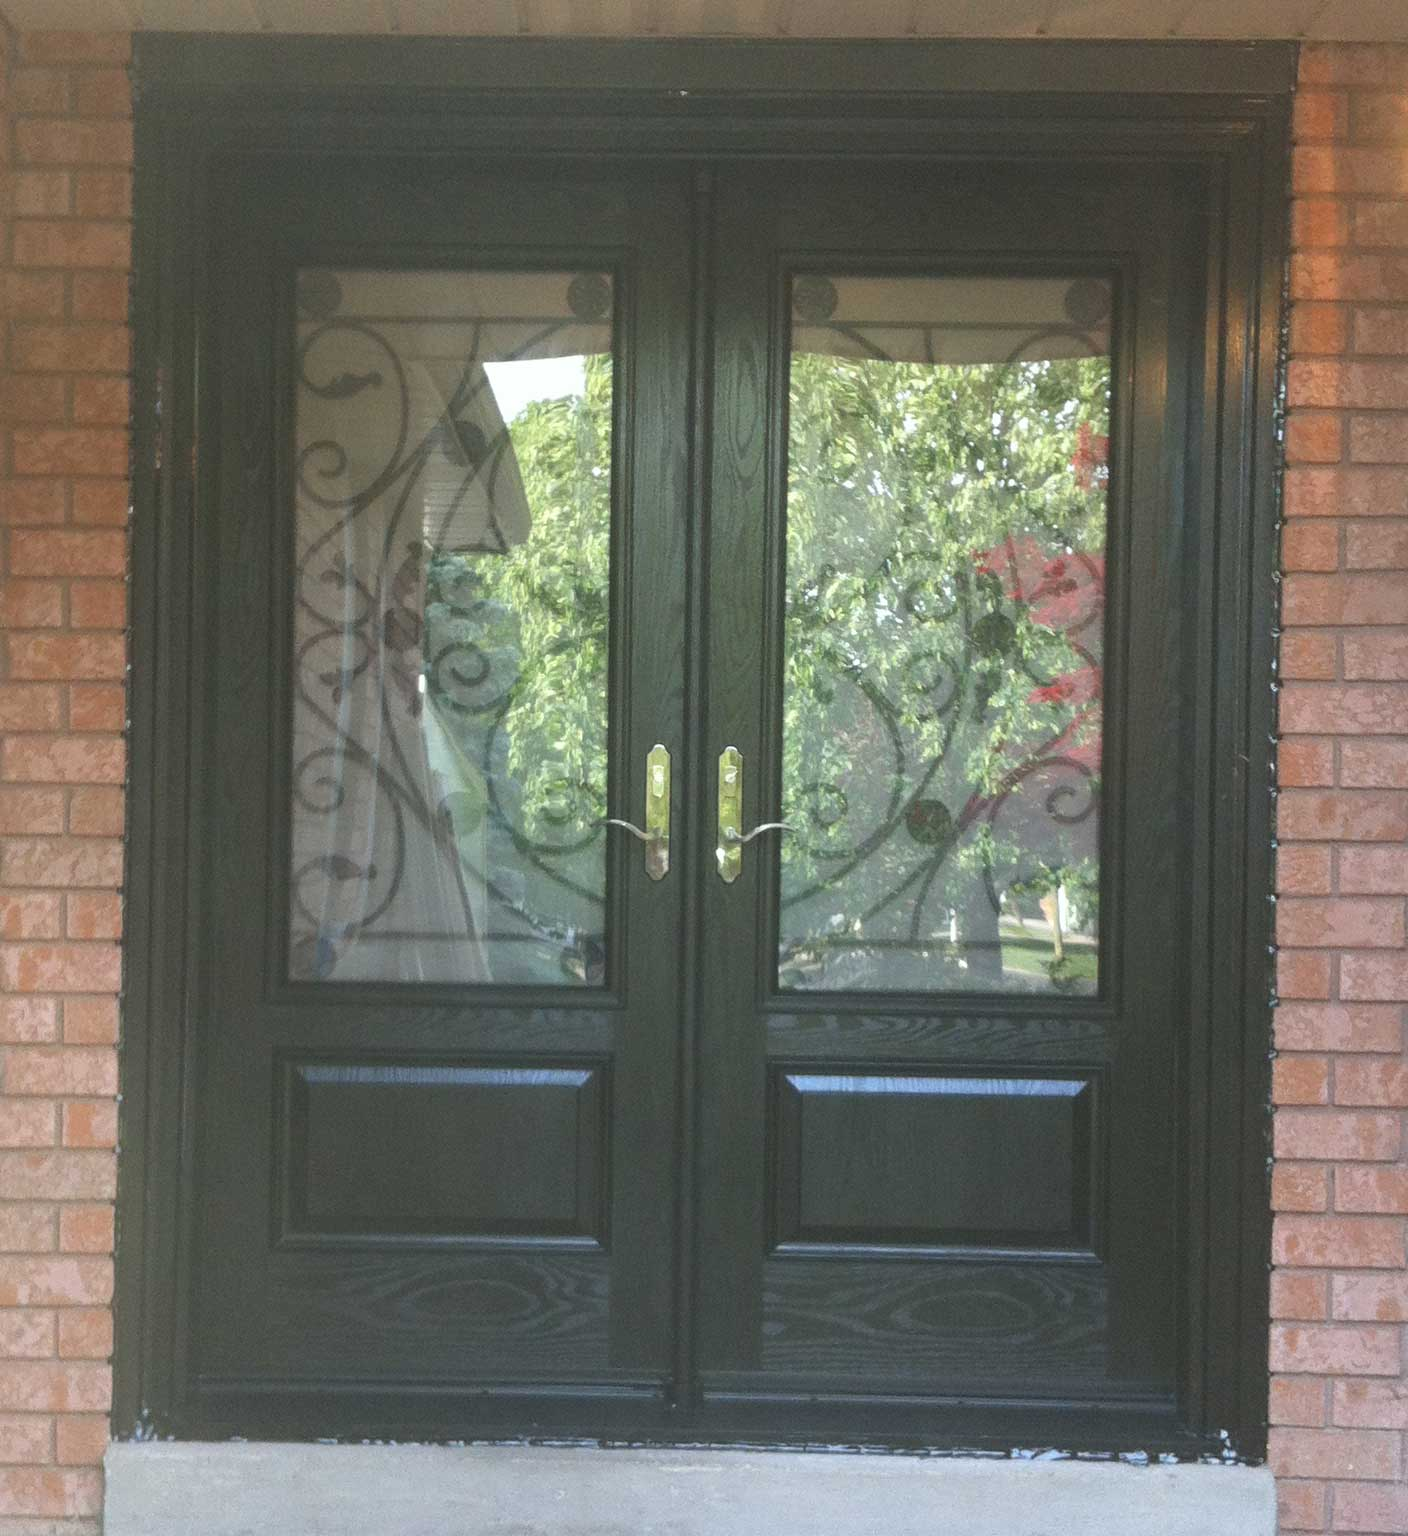 wood grain Doors, 3 quarter Iron Designed with multi point locks by Windows and Doors Toronto